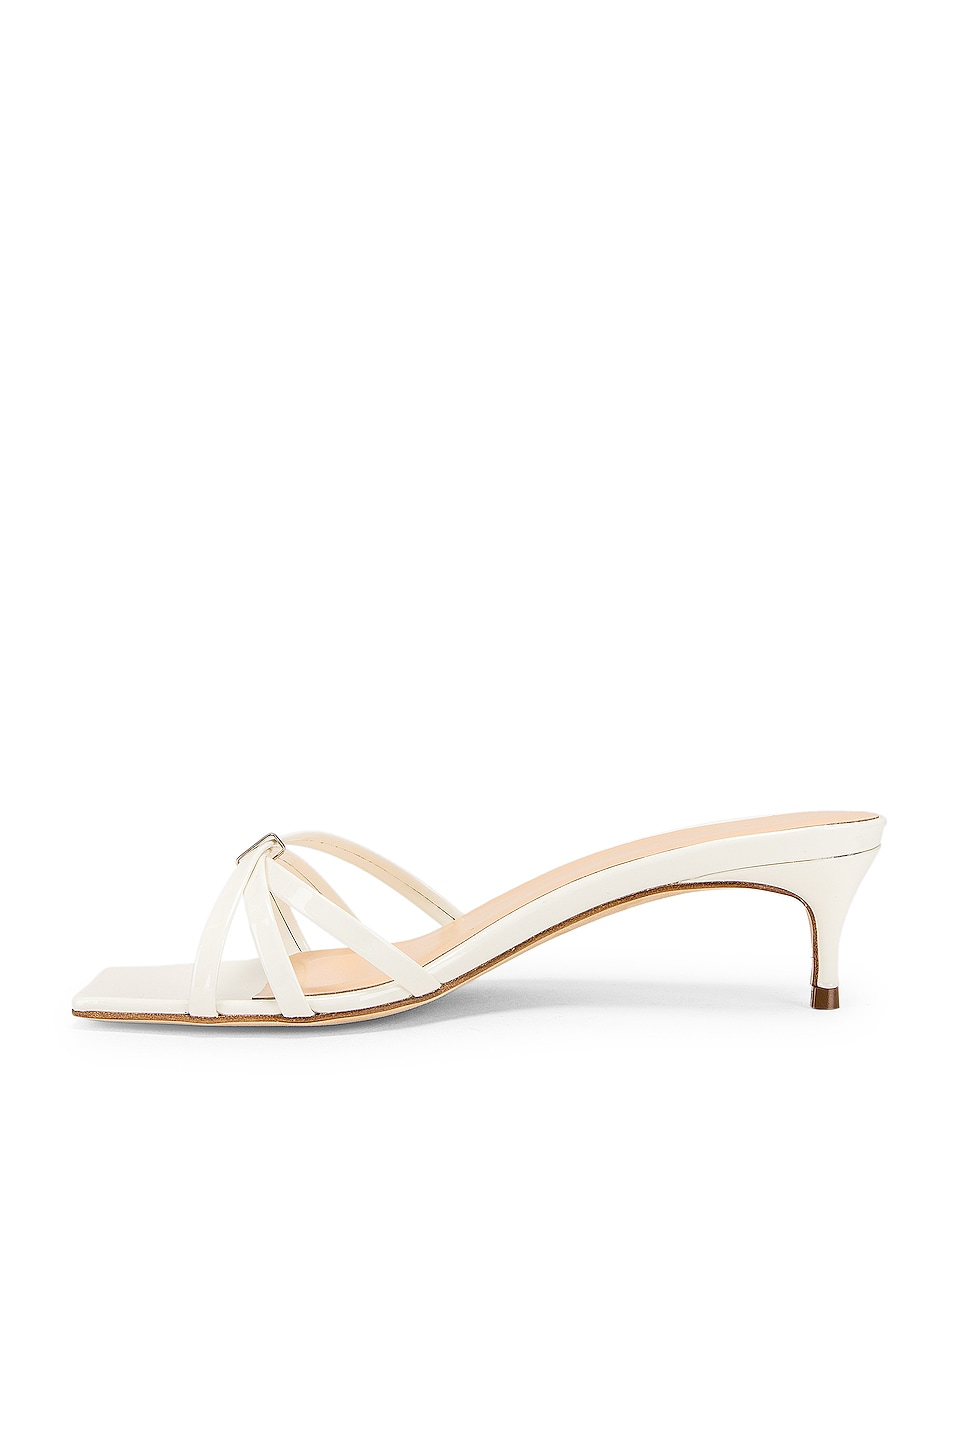 Image 5 of By Far Libra Sandal in White Patent Leather